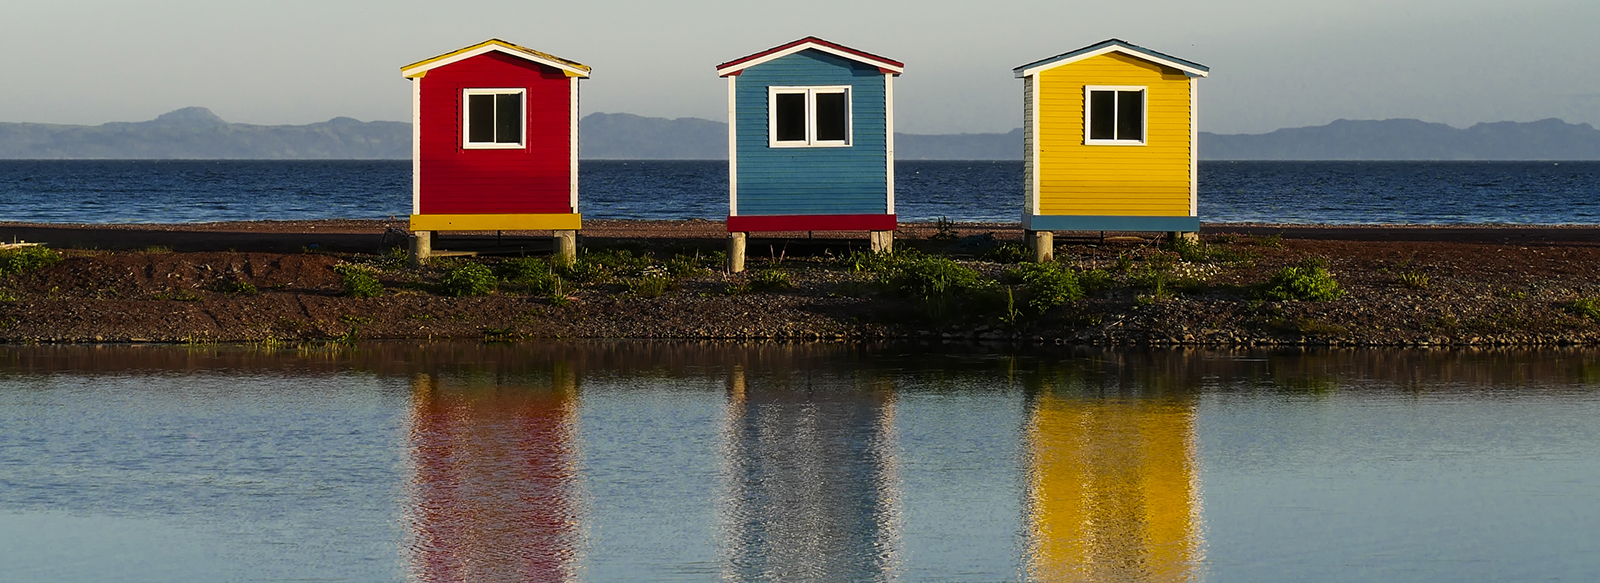 cavendish fishing huts in newfoundland